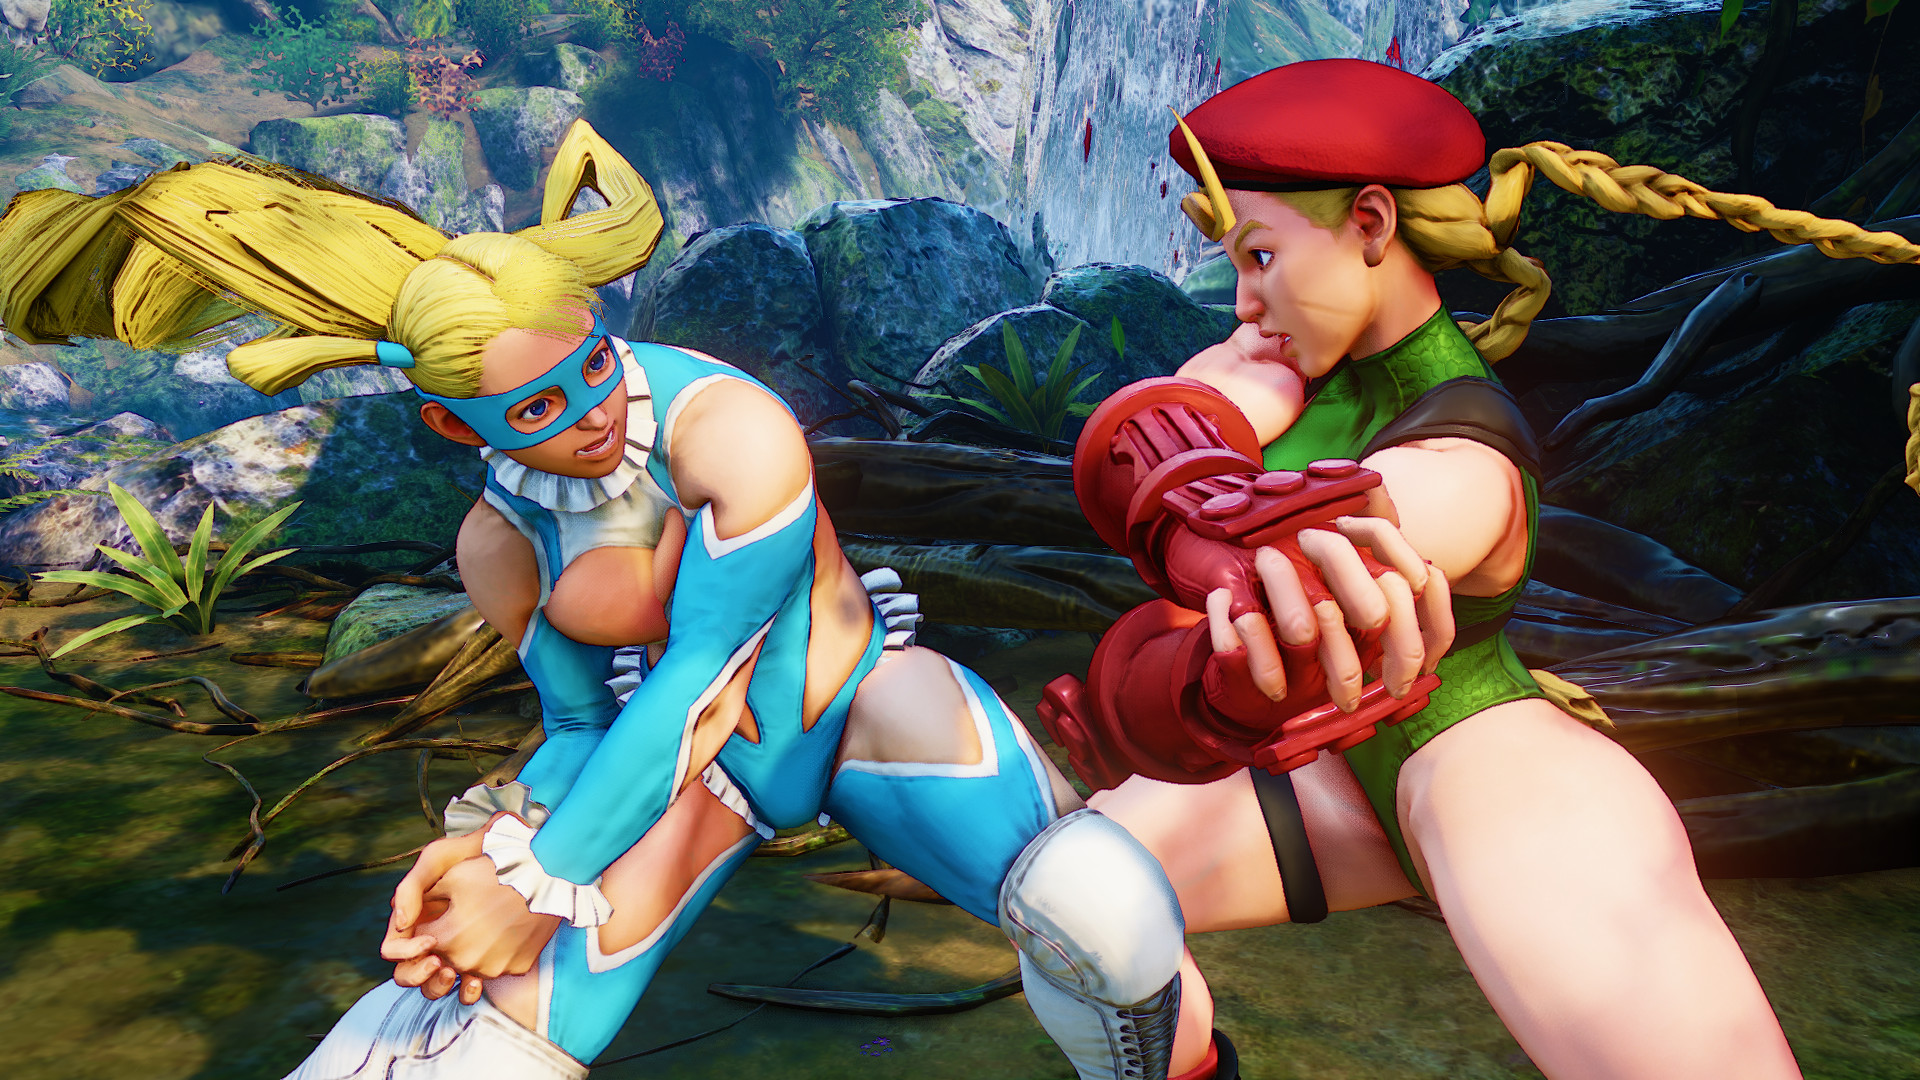 Mira el trailer de lanzamiento de Street Fighter V [VIDEO]